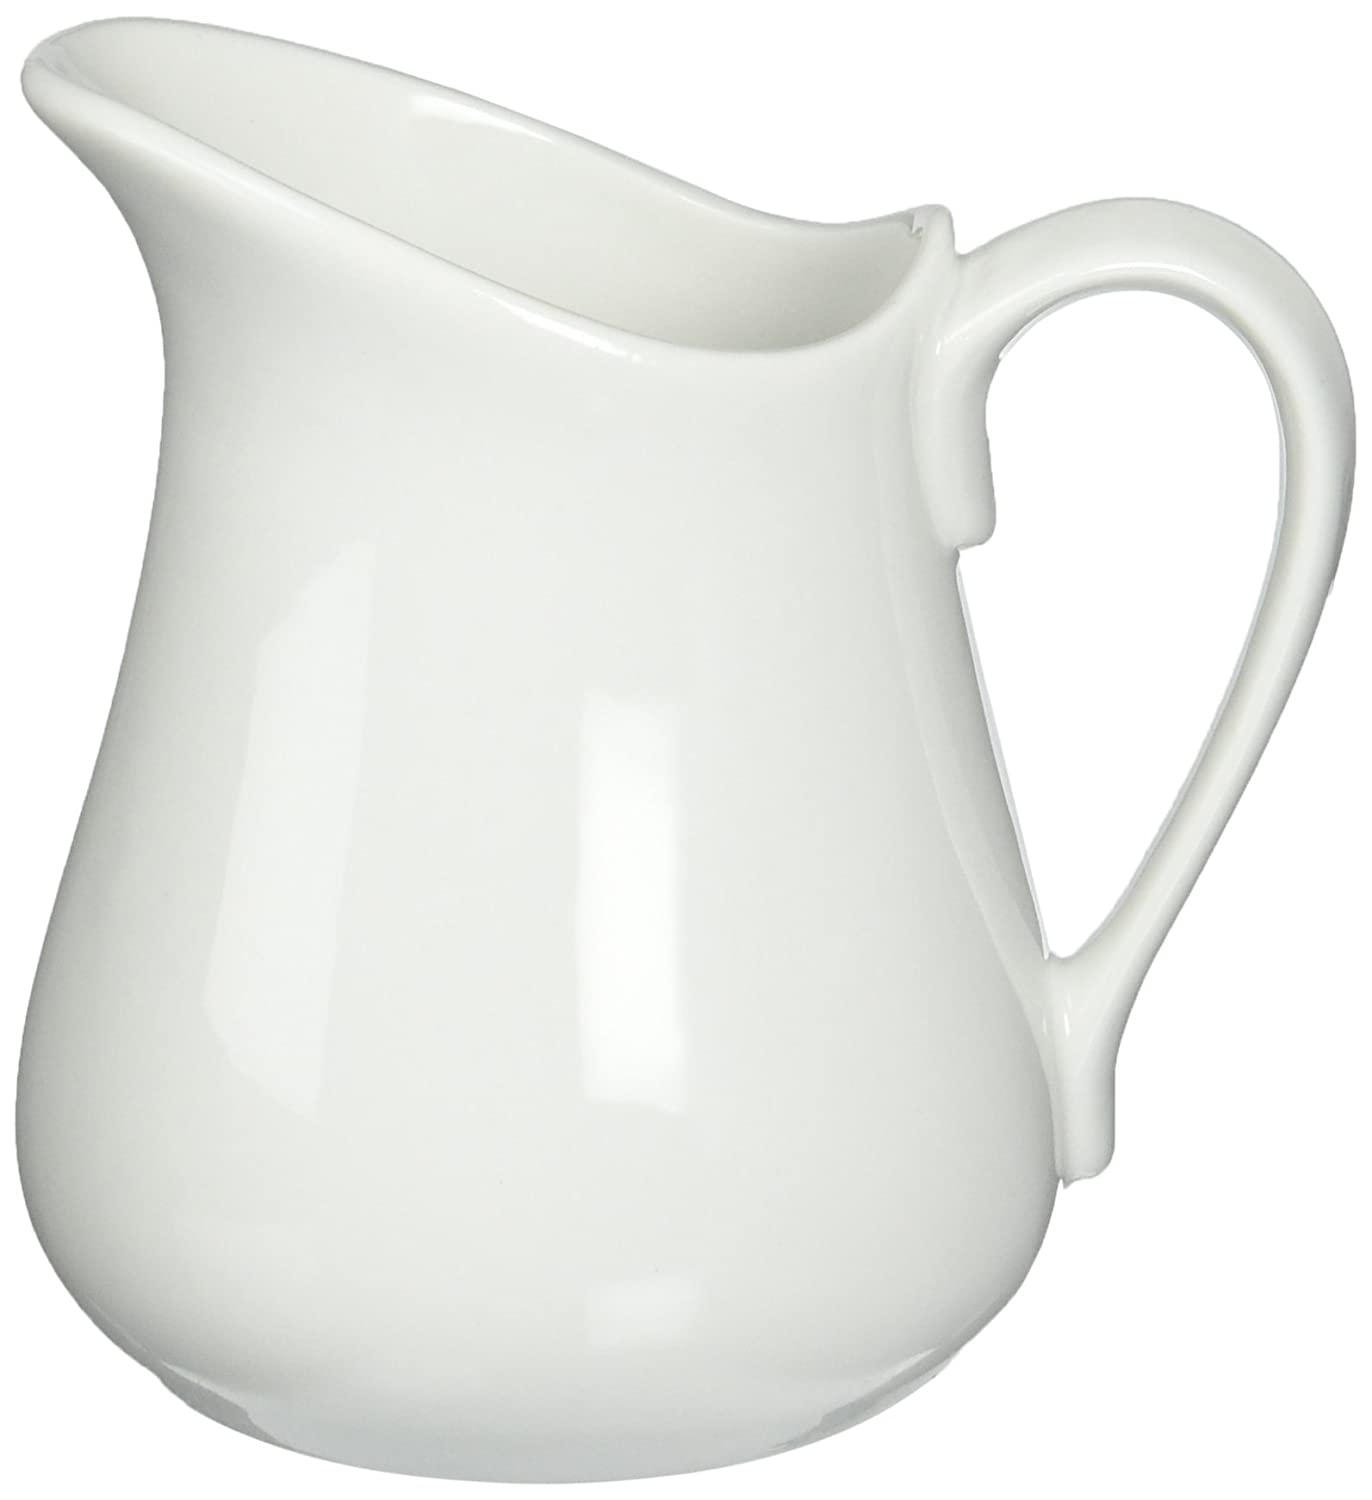 White pitcher - Come explore Serene Decor Slow Living as well as Small Thoughtful Changes at Home.